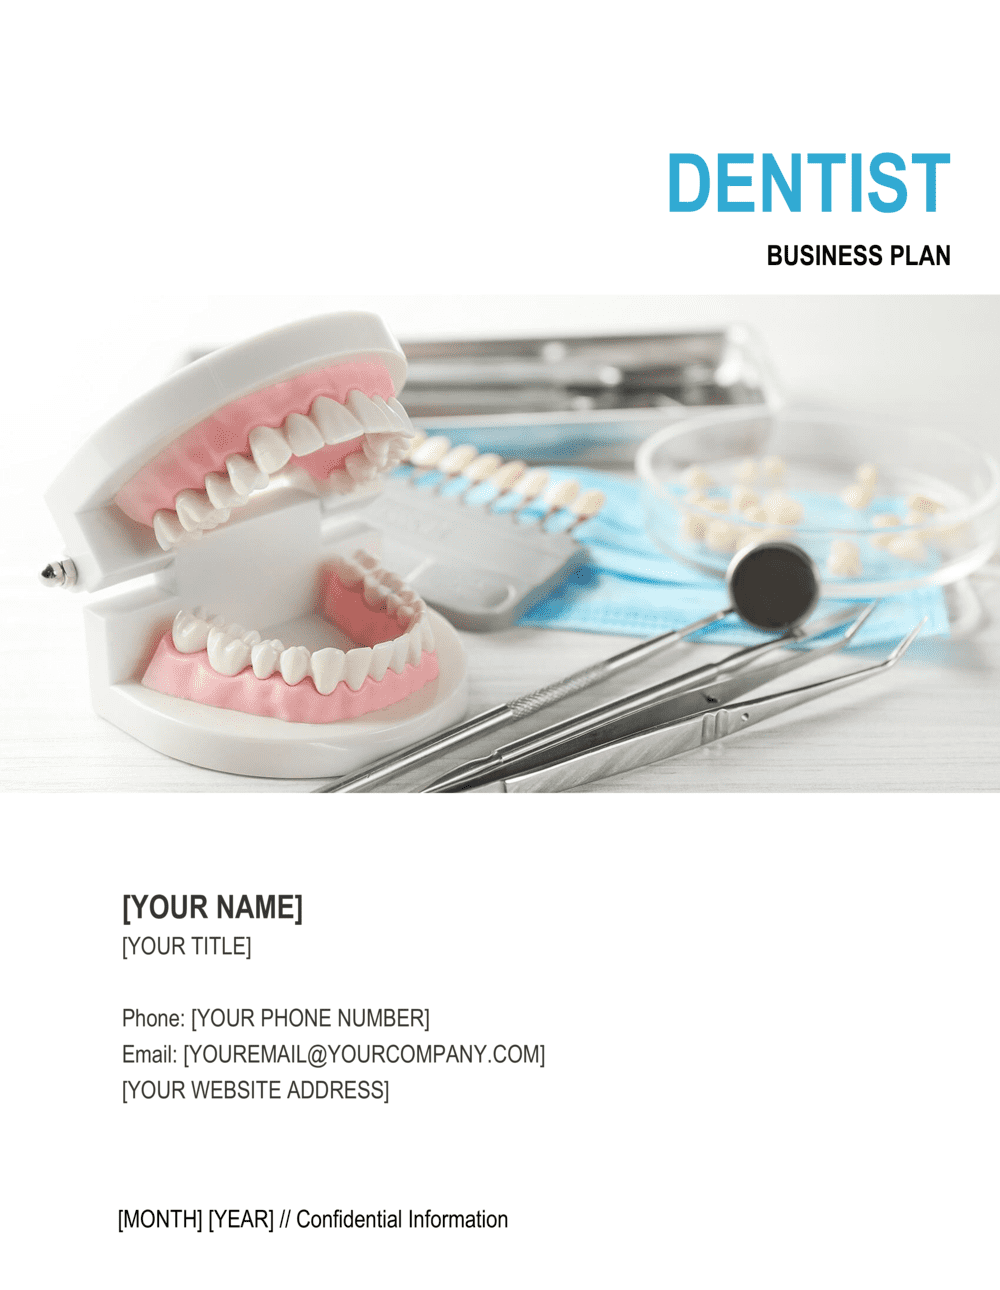 Business-in-a-Box's Dentist Business Plan Template